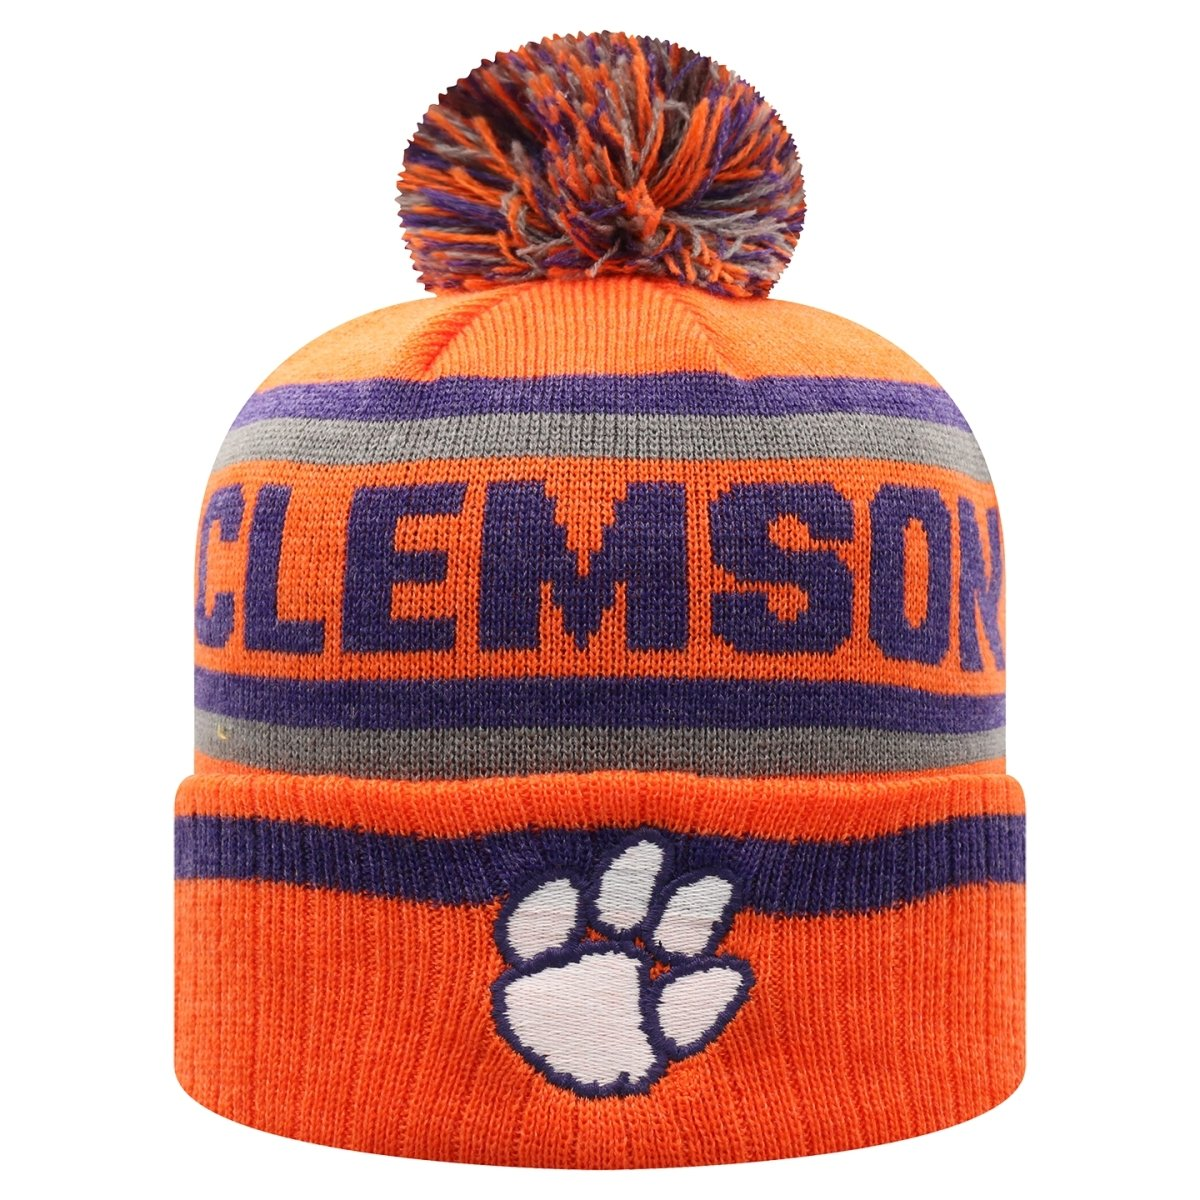 Top of the World Clemson Tigers Buddy Style Knit Beanie - Mr. Knickerbocker